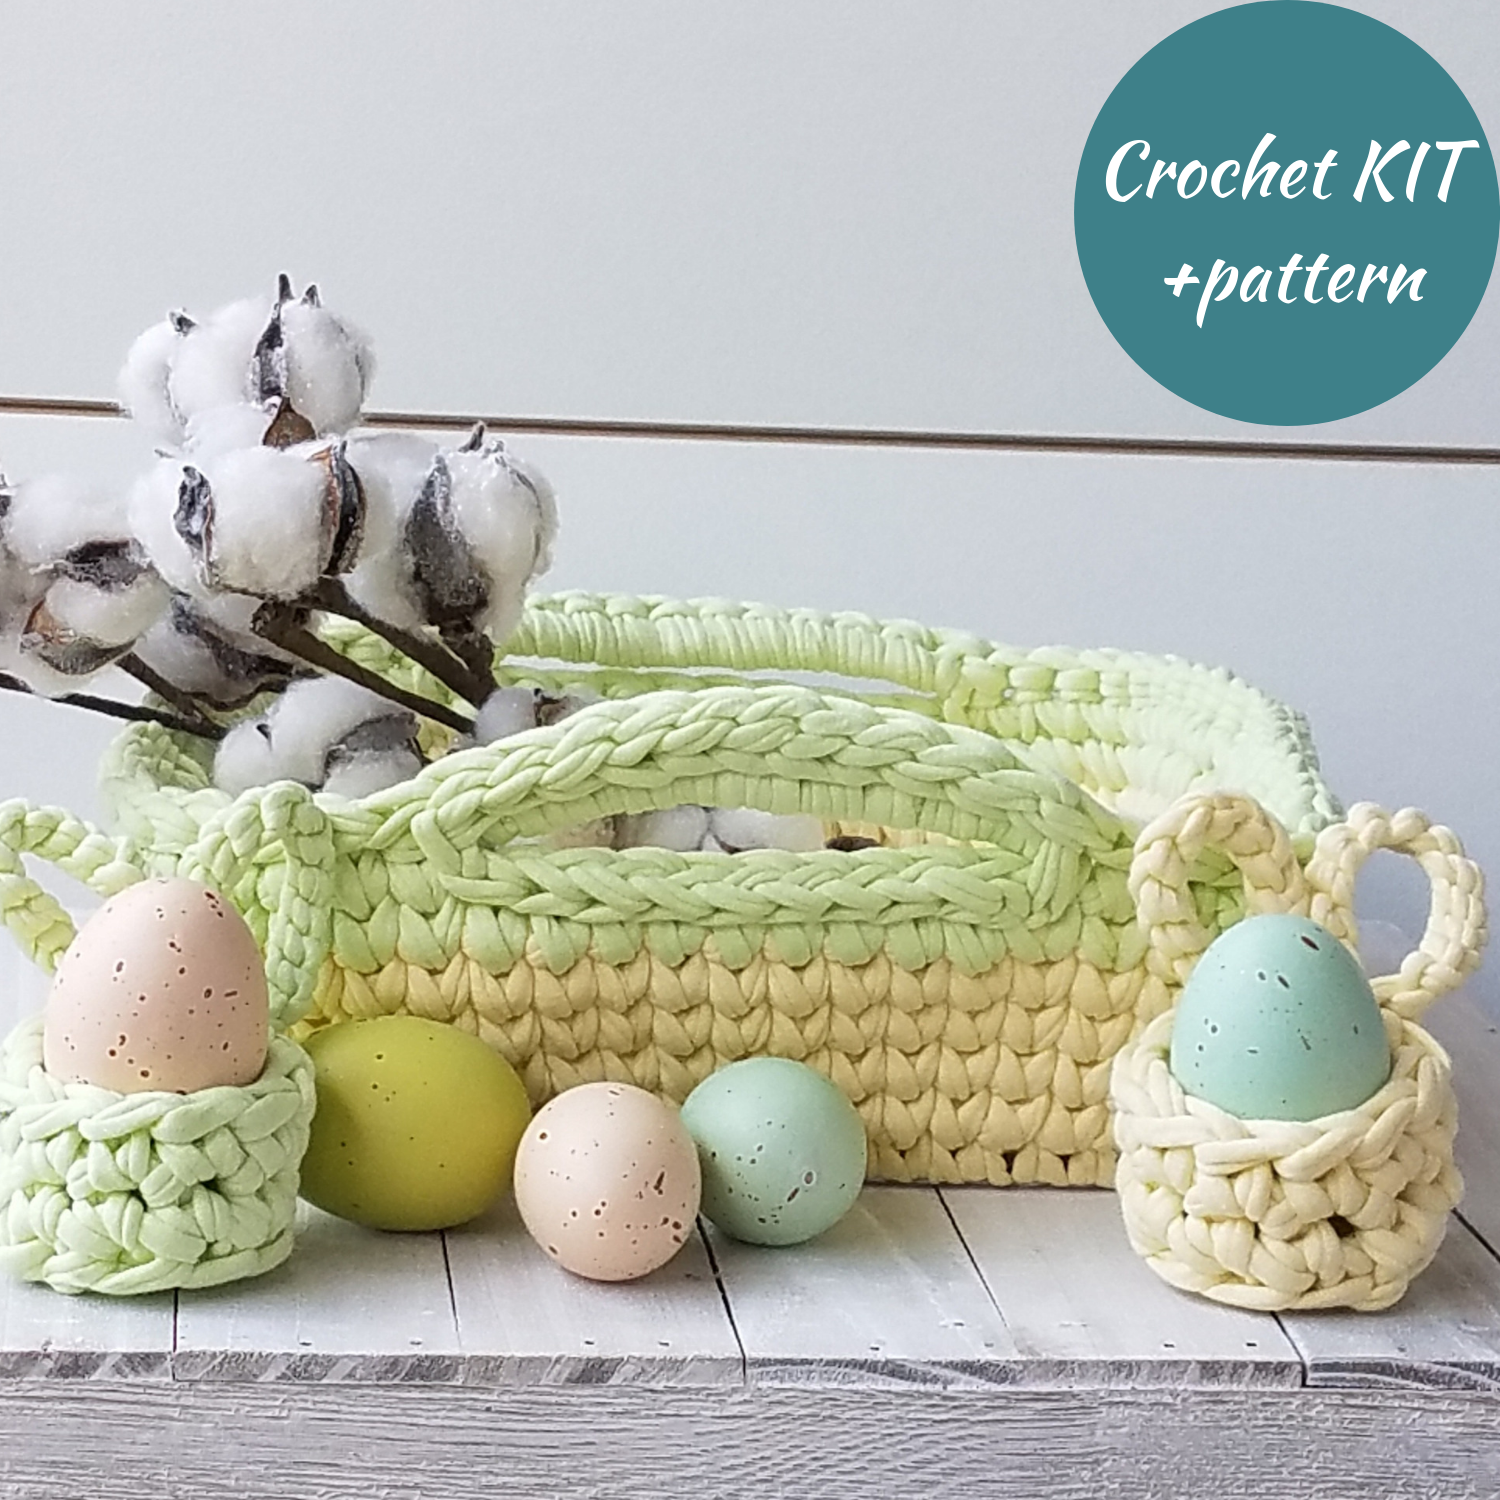 Crochet KIT +pattern.png